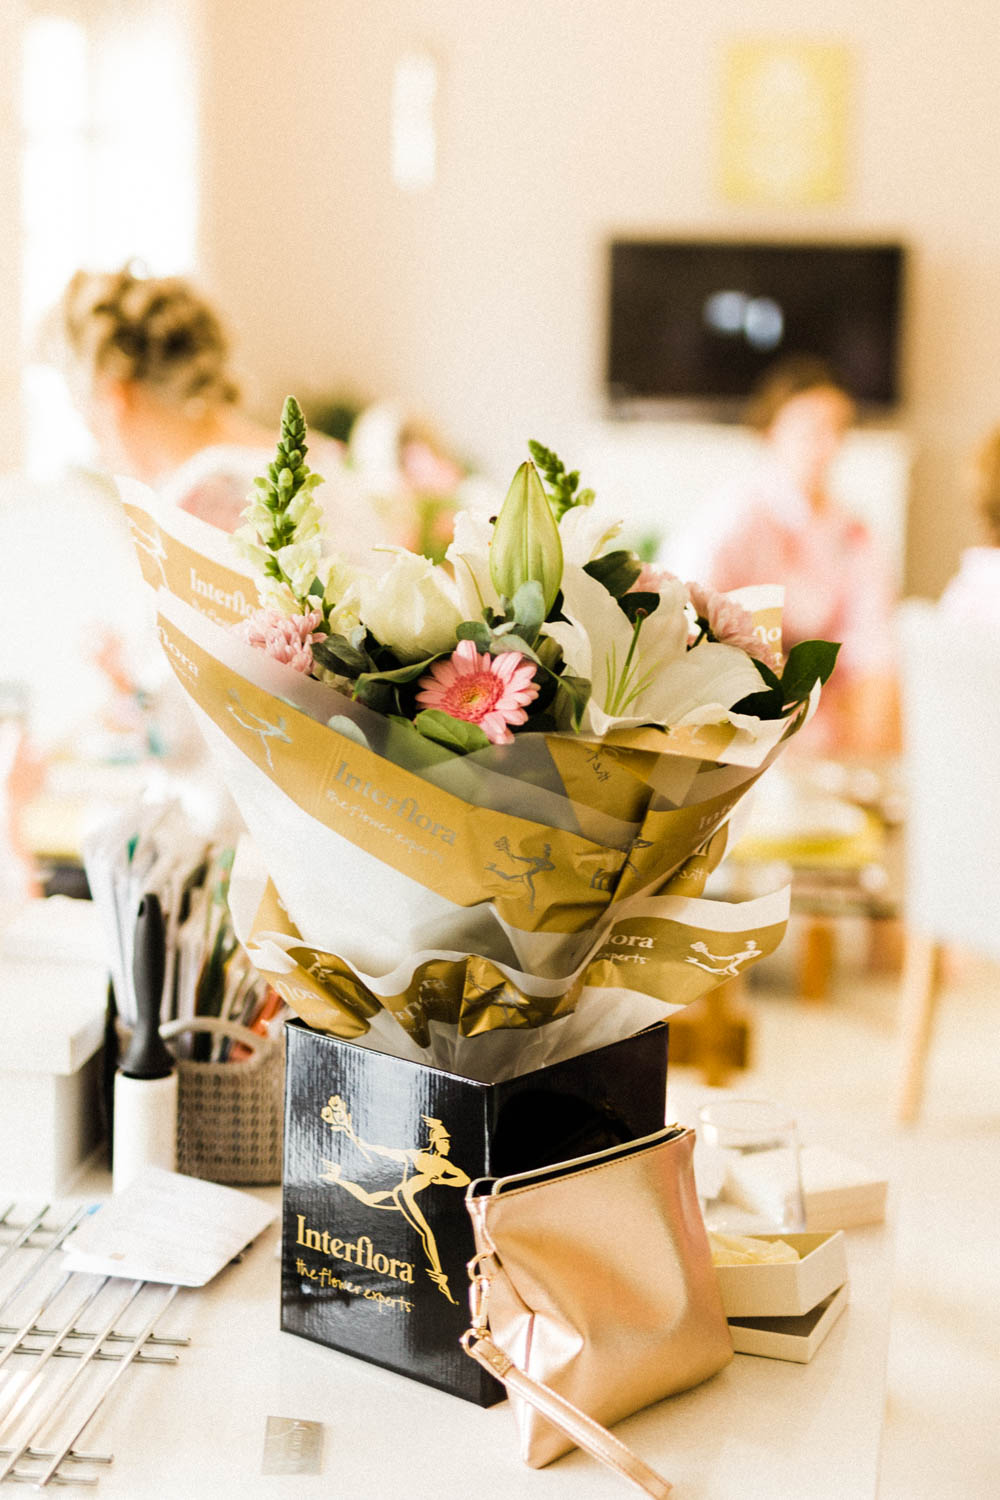 Special-Day-Photography-The-Manor-House-Hotel-Moreton-in-Marsh-Moreton-In-Marsh-Summer-Wedding-a-wedding-bouquet-from-a-local-Cheltenham-supplier.jpg